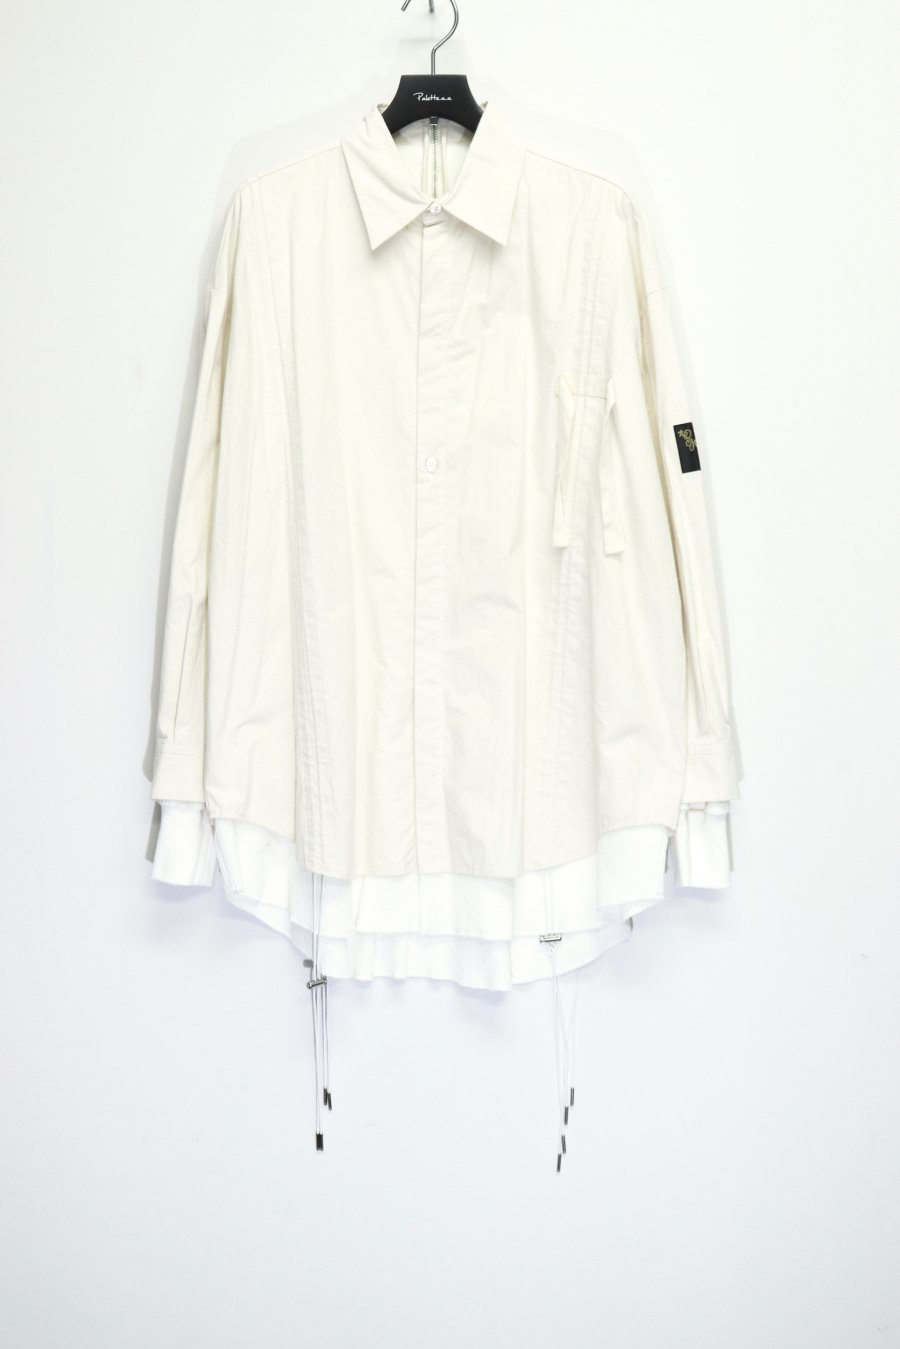 SYU.HOMME/FEMM  Doubleface Over shirts(OFF)<img class='new_mark_img2' src='https://img.shop-pro.jp/img/new/icons15.gif' style='border:none;display:inline;margin:0px;padding:0px;width:auto;' />